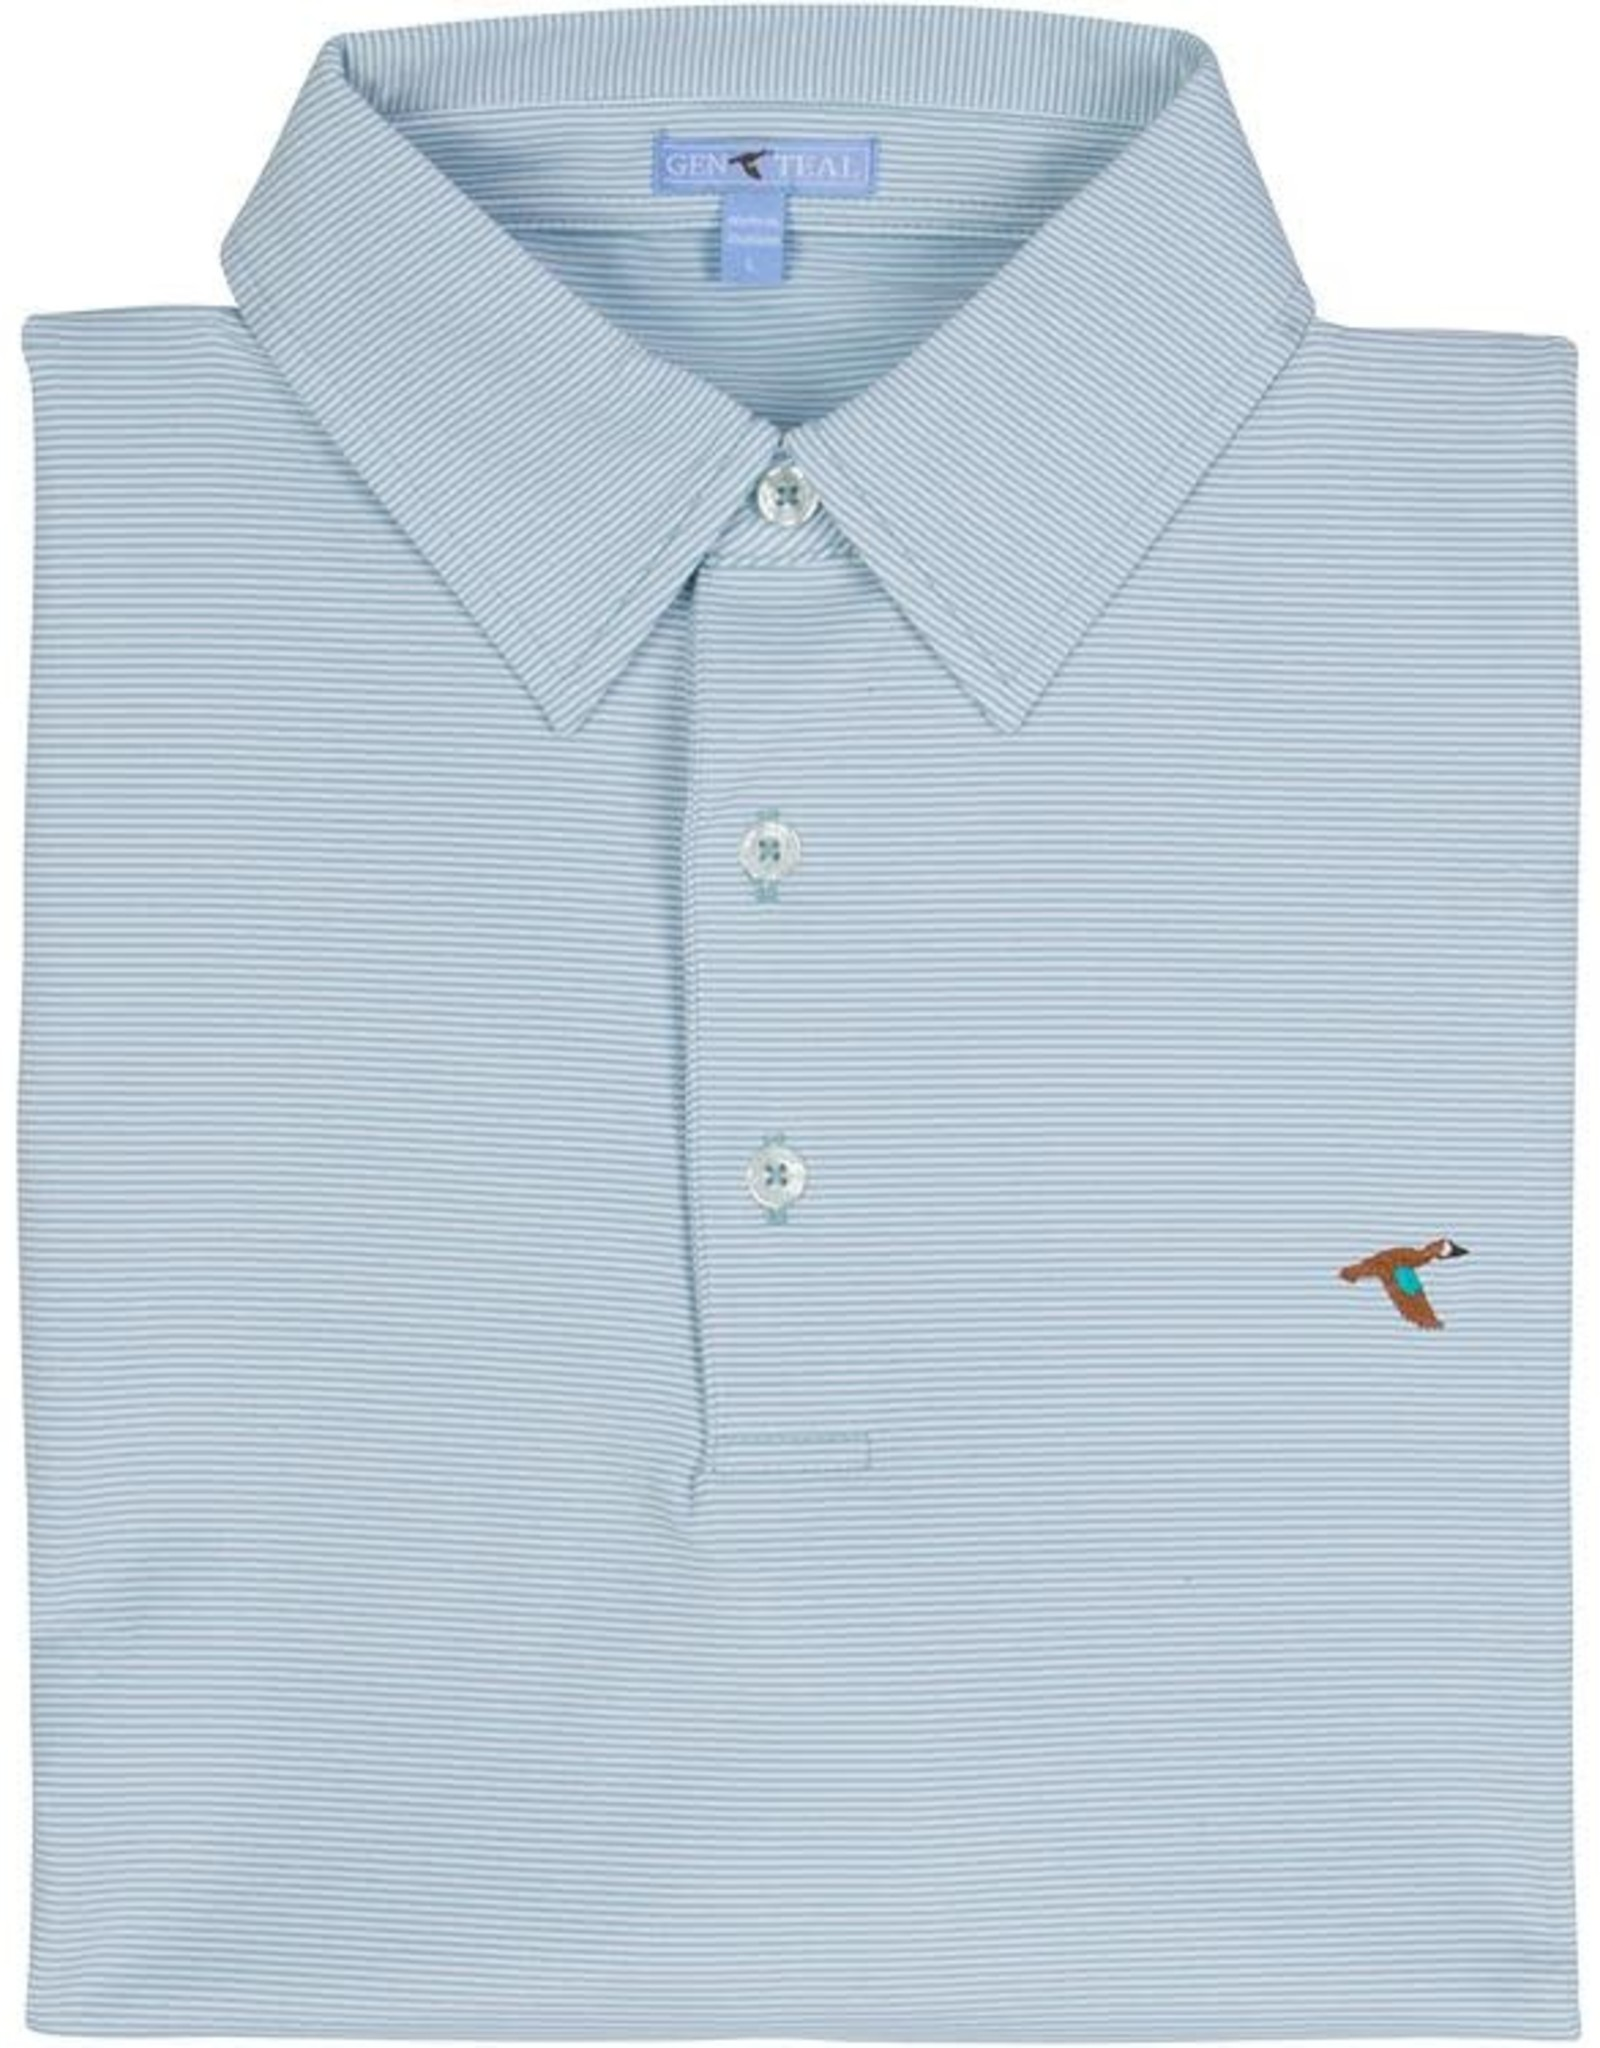 GenTeal Apparel 695 - Performance Polo